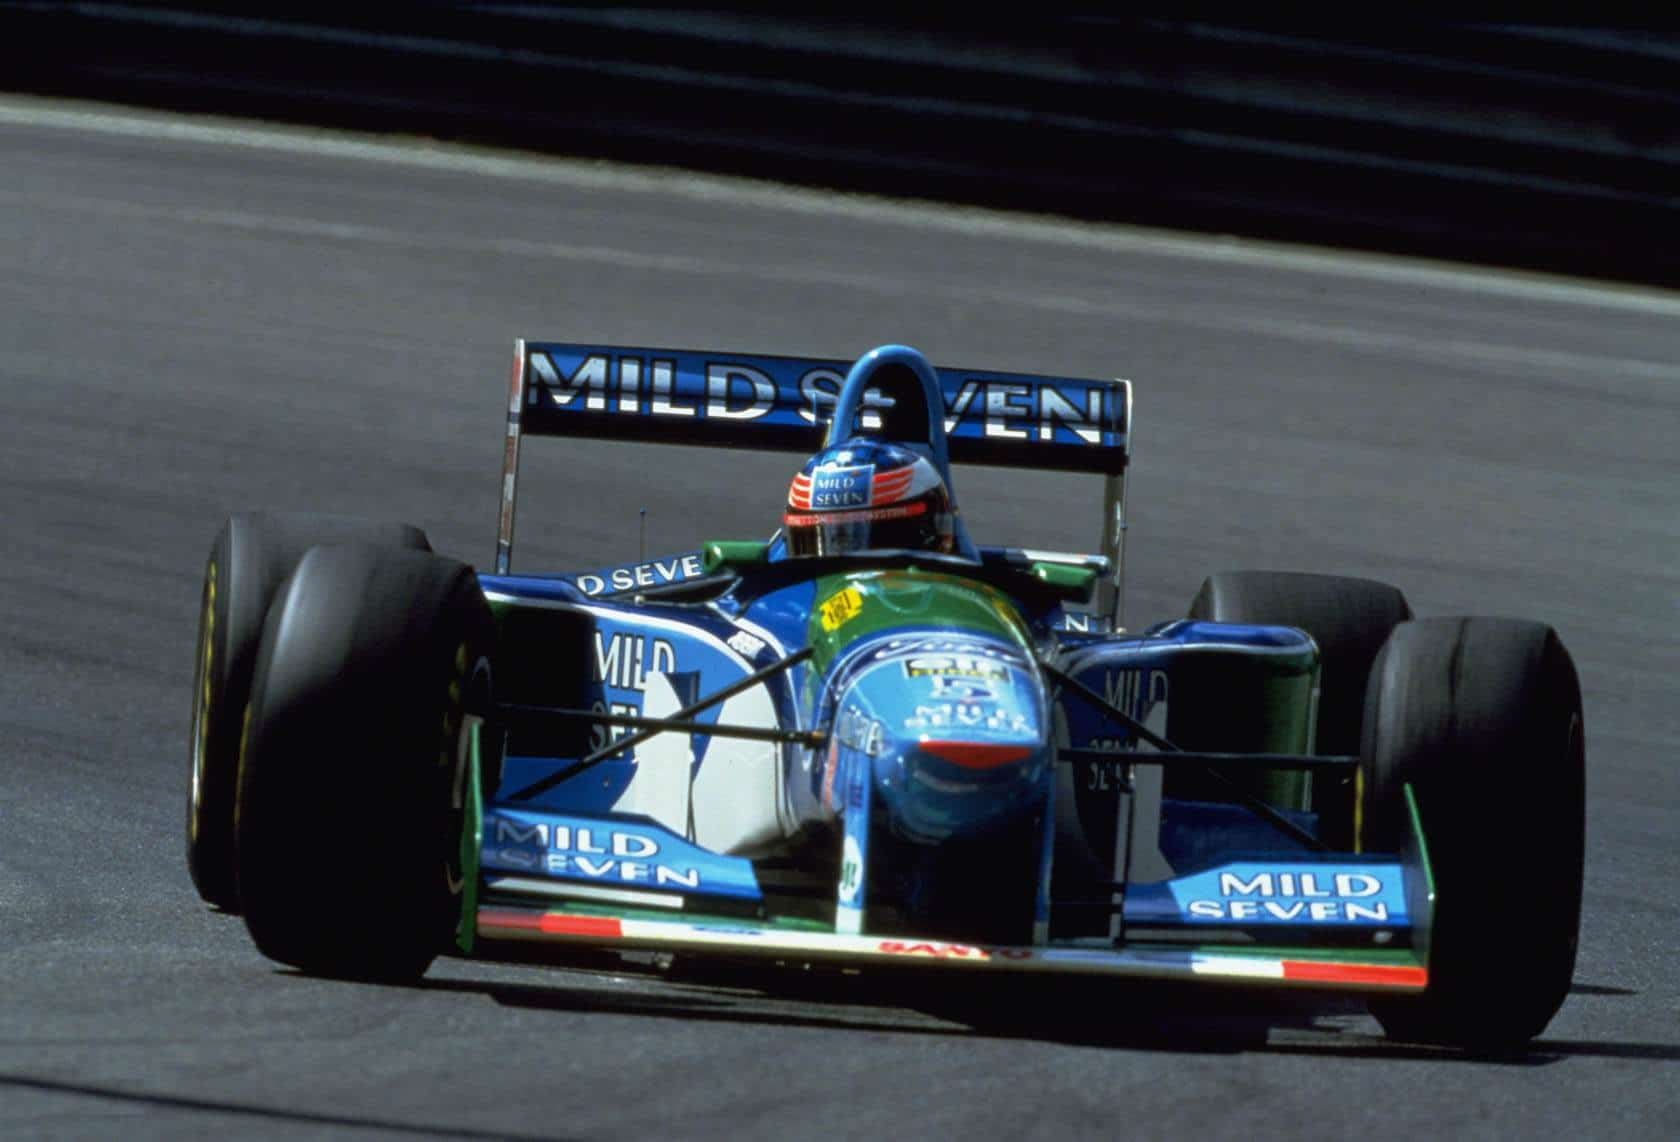 Michael Schumacher Benetton B194 Ford Spa Francorchamps Belgian GP F1 1994 Photo Ford